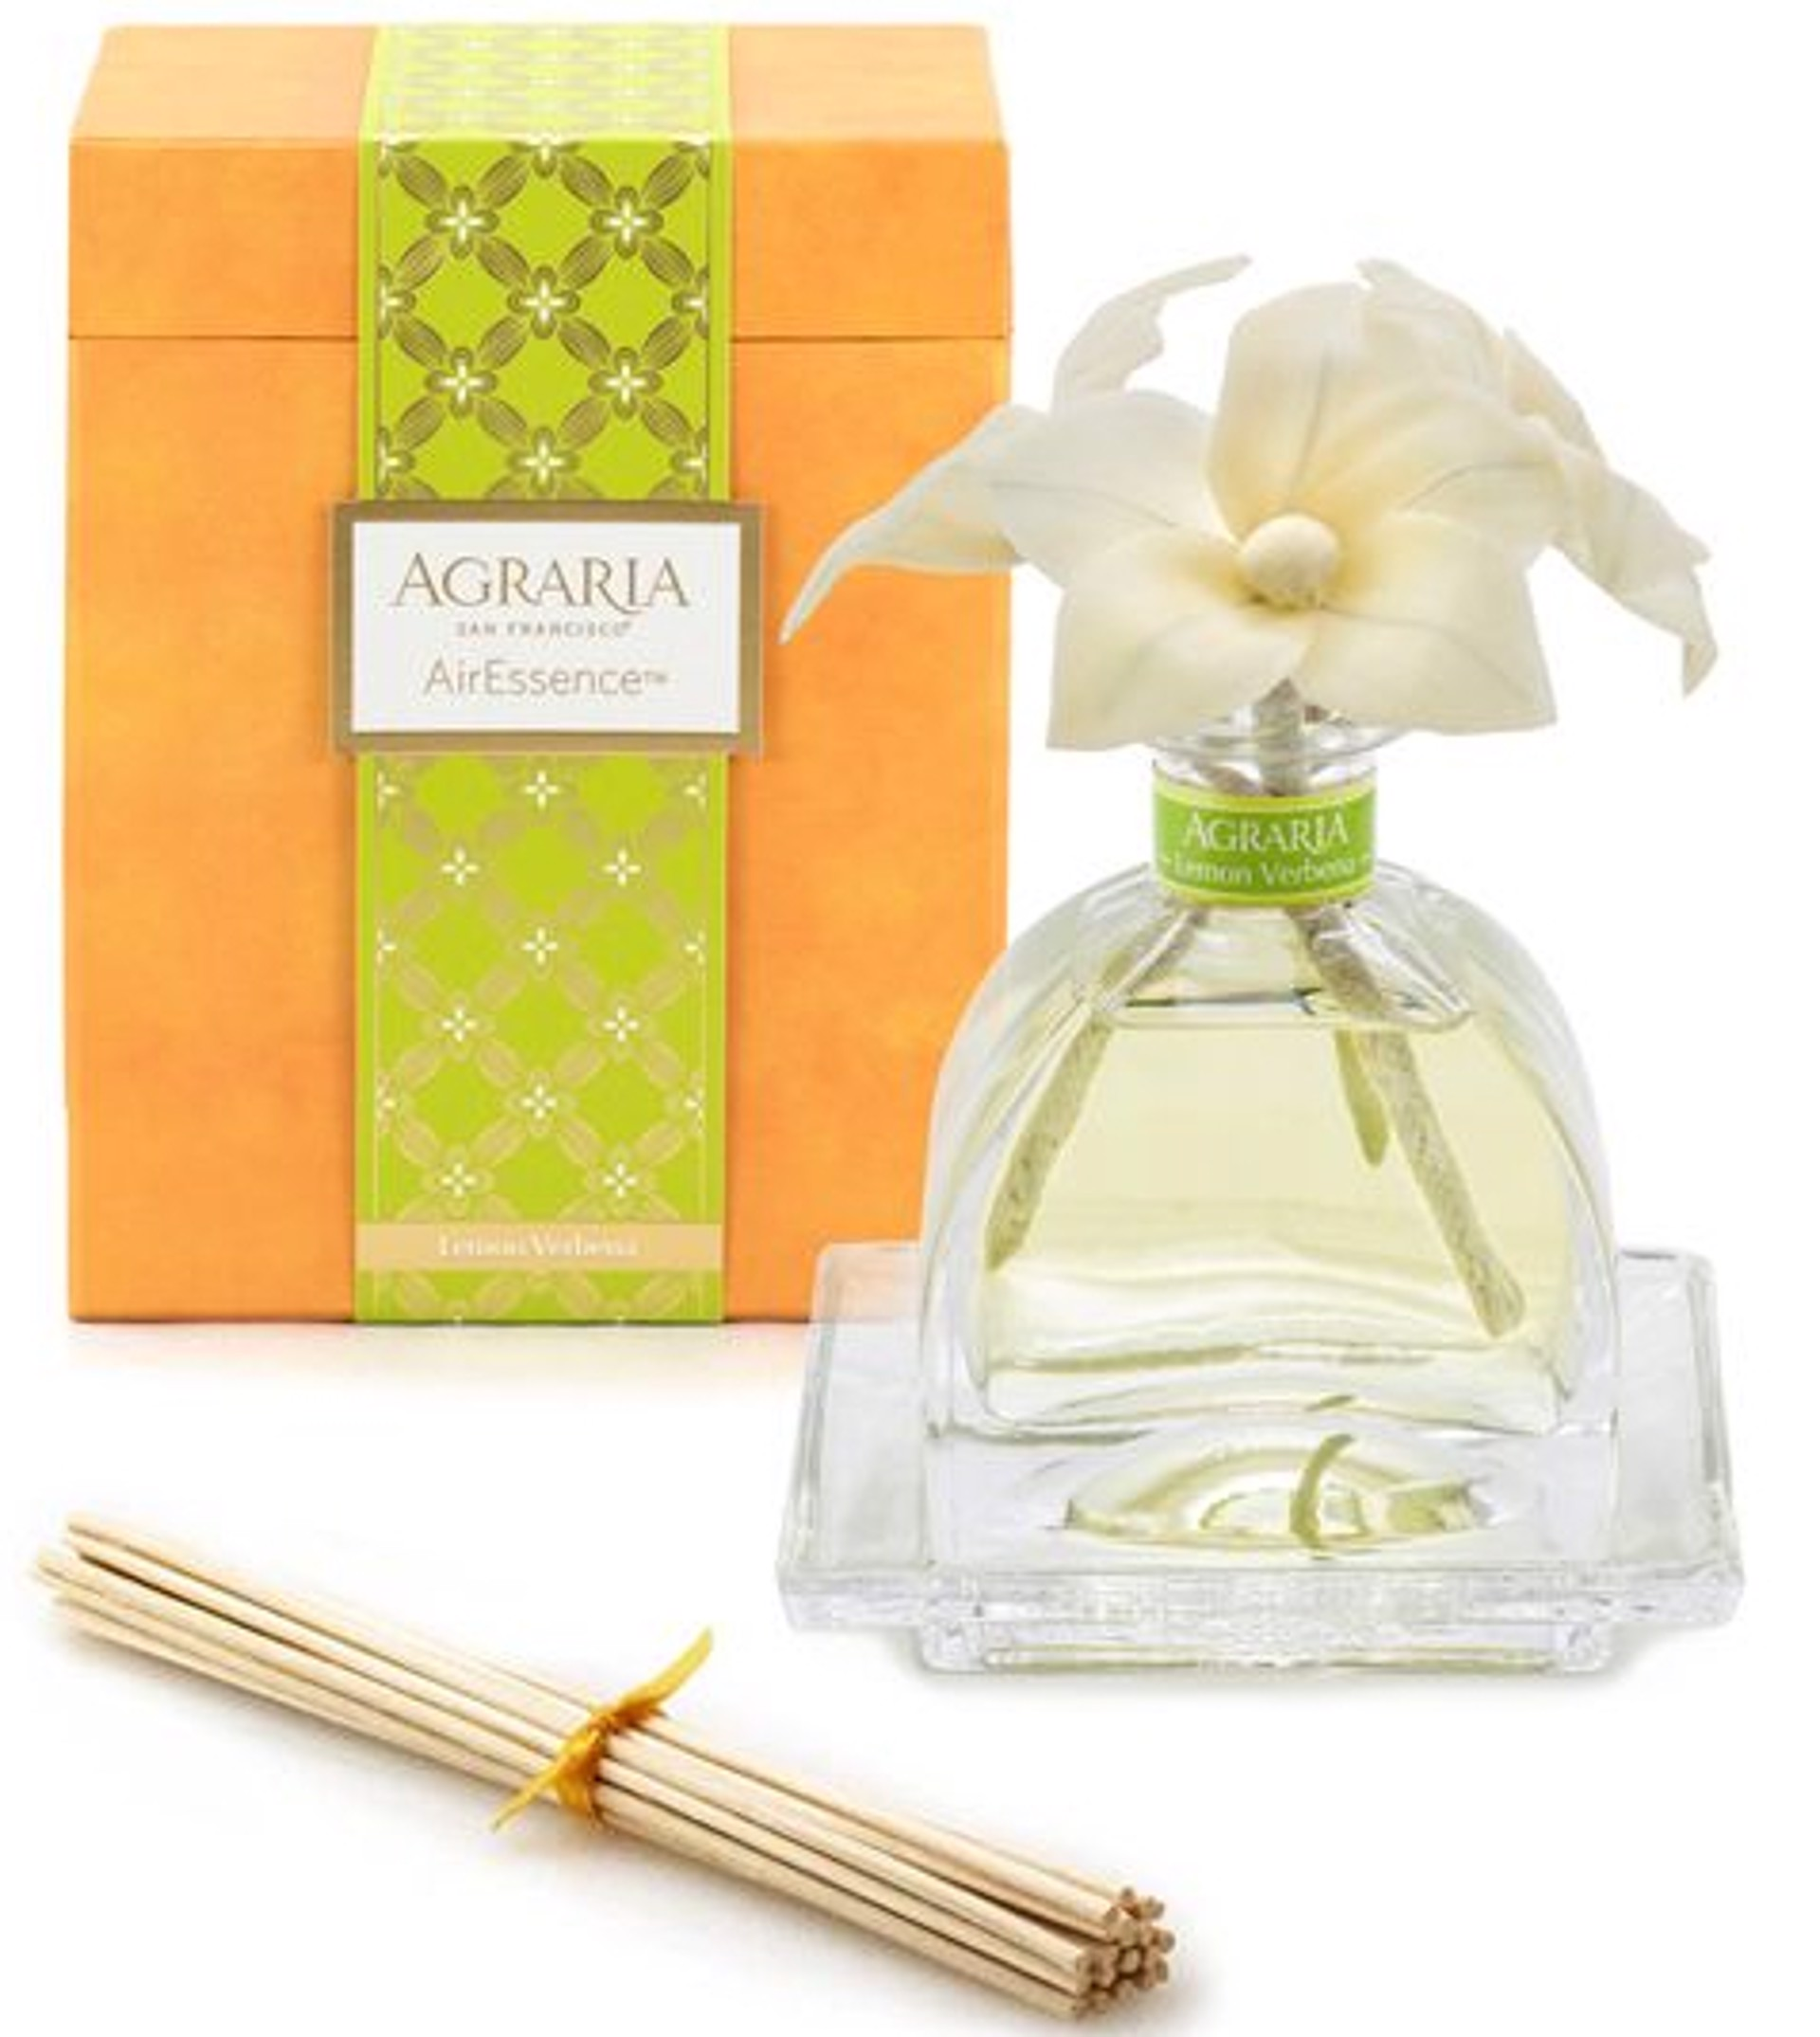 Lemon Verbena AirEssence Diffuser 7.4oz by Agraria Diffusers